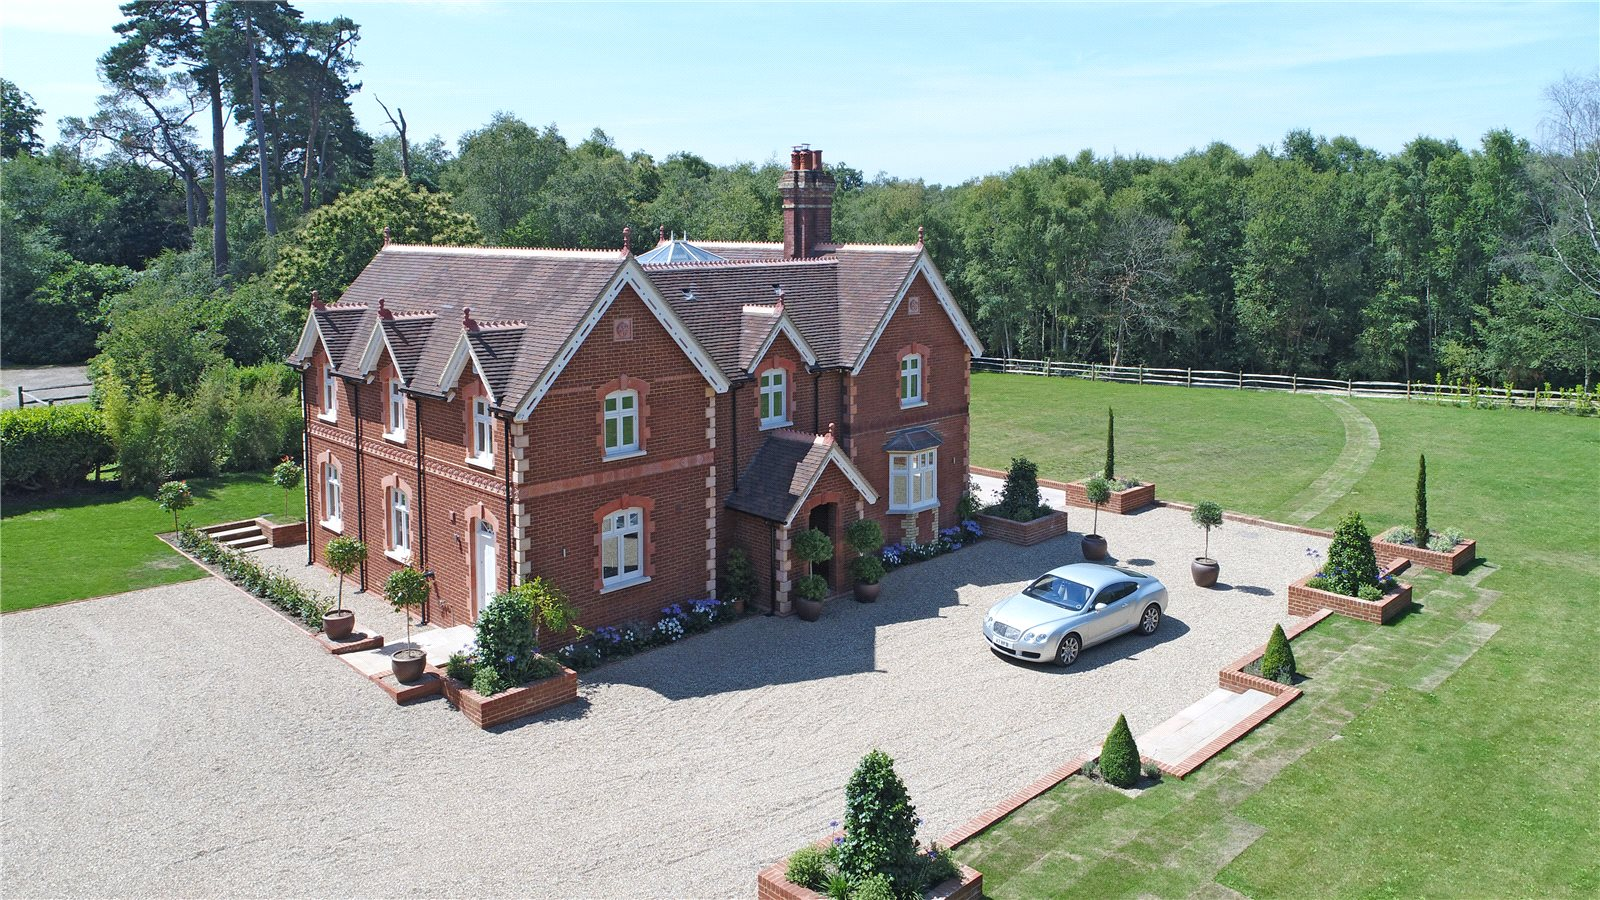 Single Family Home for Sale at Eridge Park, Eridge Green, Tunbridge Wells, Kent, TN3 Tunbridge Wells, England